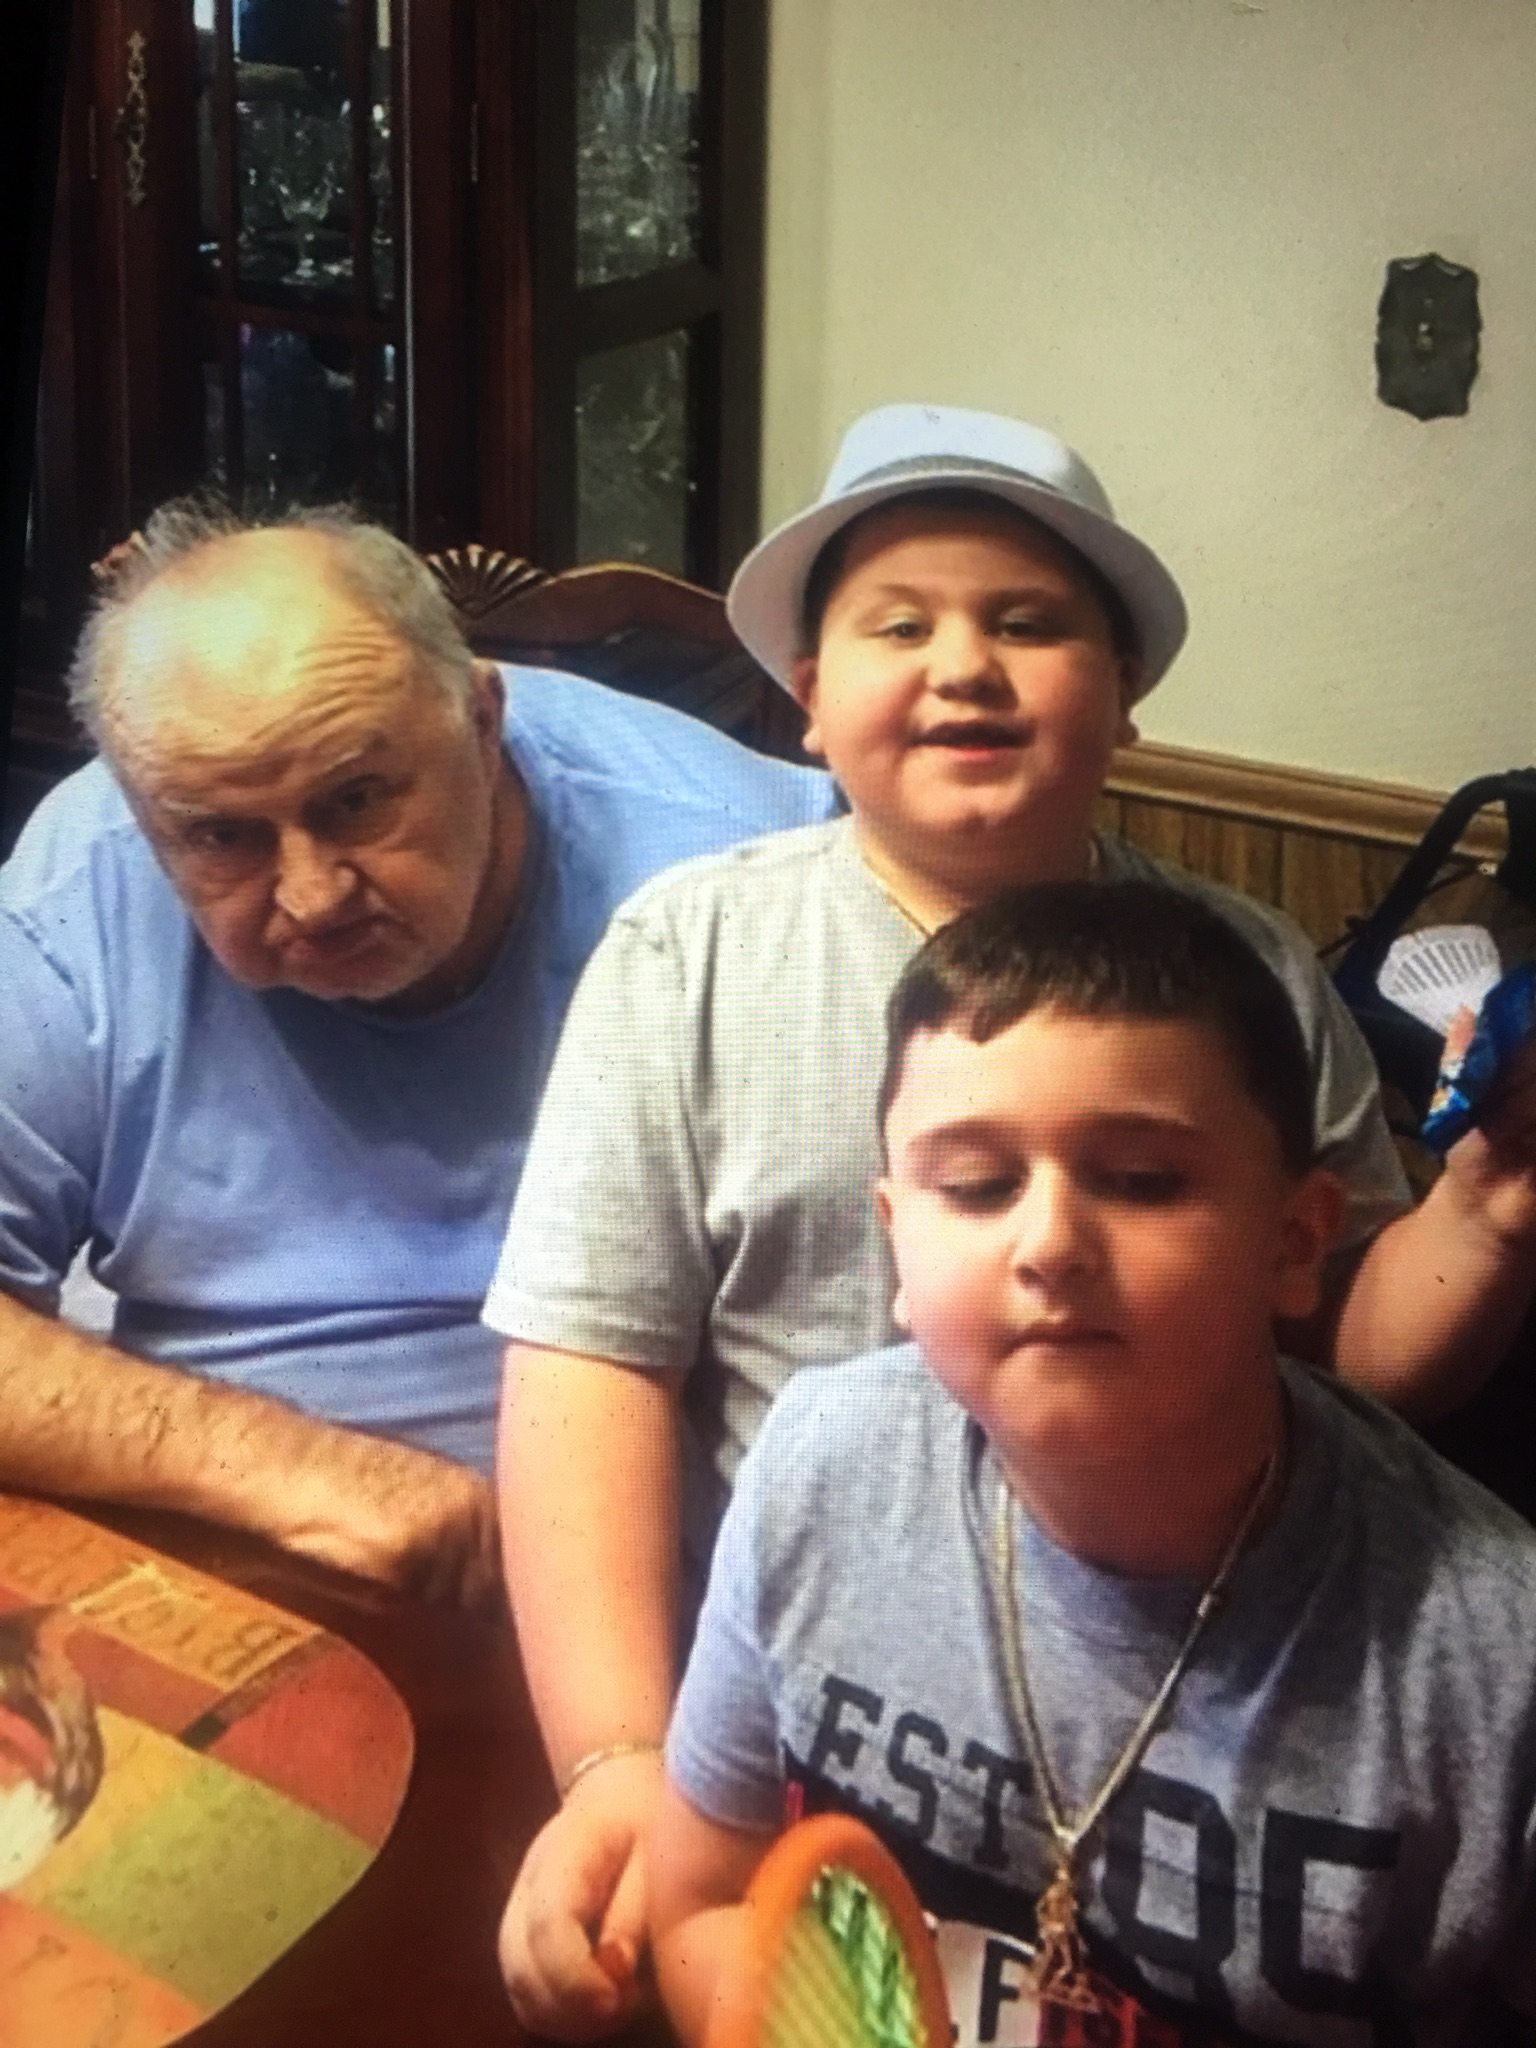 Here is dad with my boys his grandsons daddy adored them